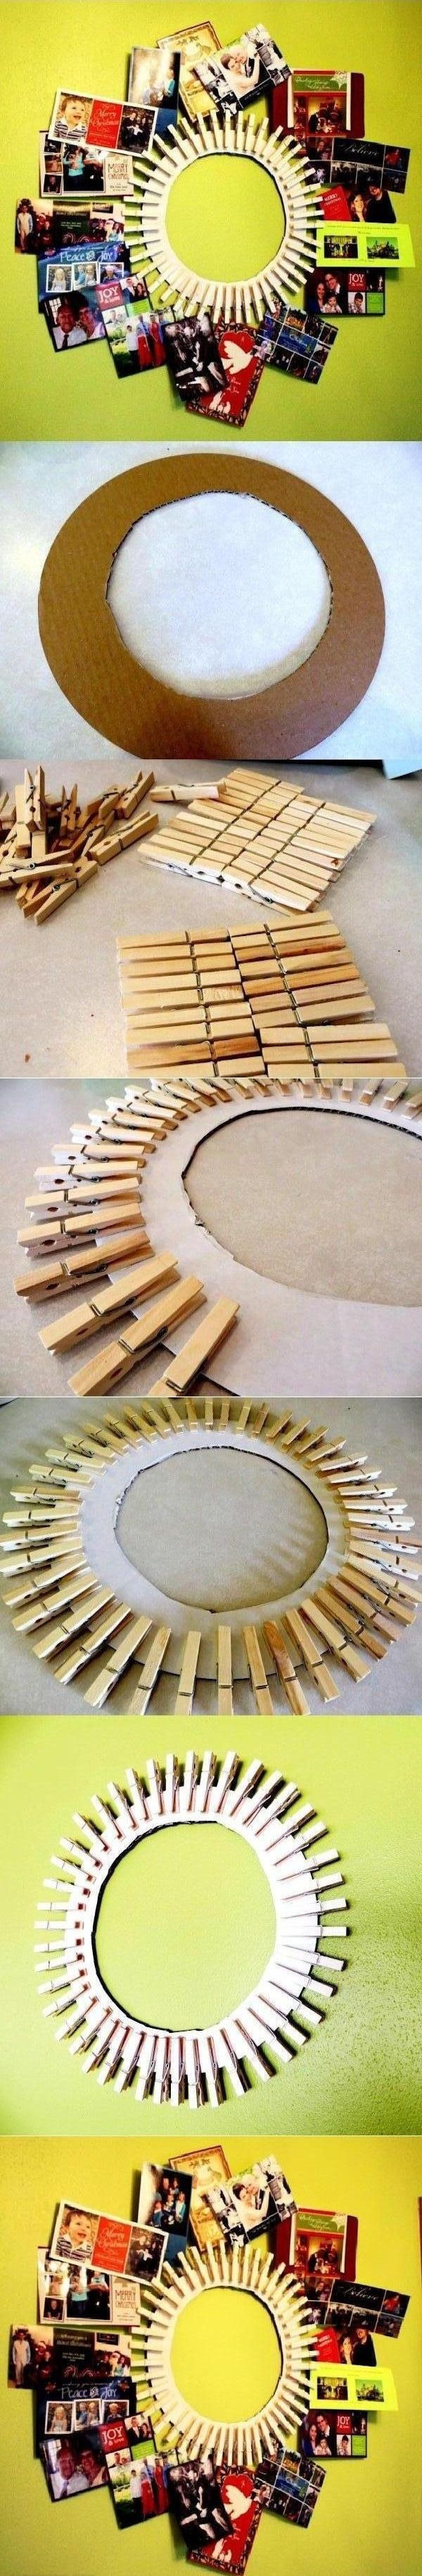 DIY Picture Frames Pictures, Photos, and Images for Facebook, Tumblr, Pinterest, and Twitter